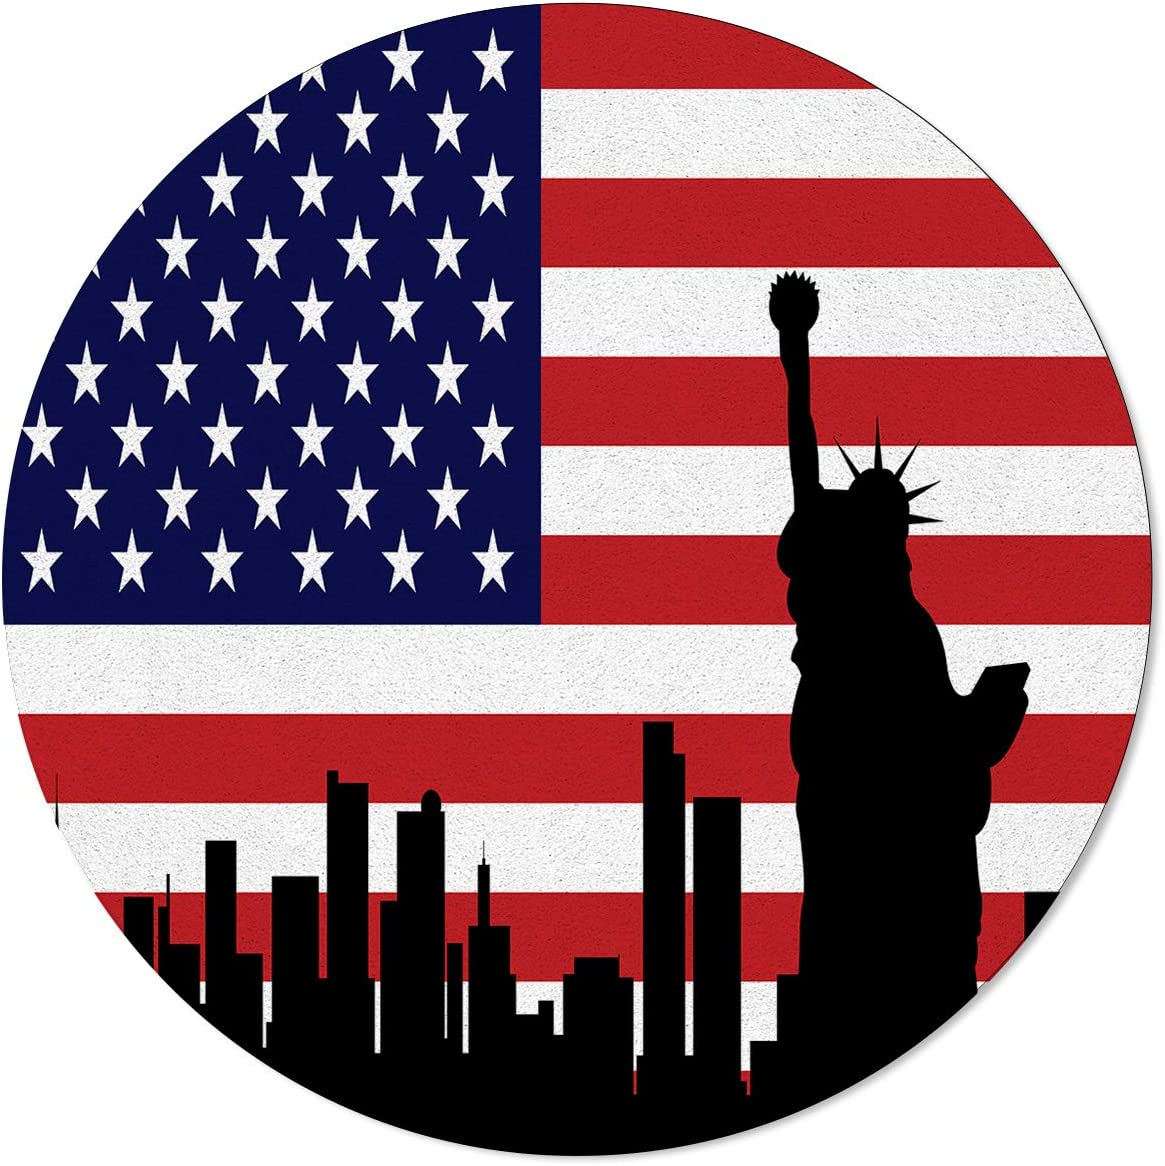 Meet 1998 Round Area Rugs American Flag with New York Cities Outline Non-Slip Home Decor Statue of Liberty Indoor Children Playroom Kitchen Bedroom Living Floor Mats 5ft(60in)